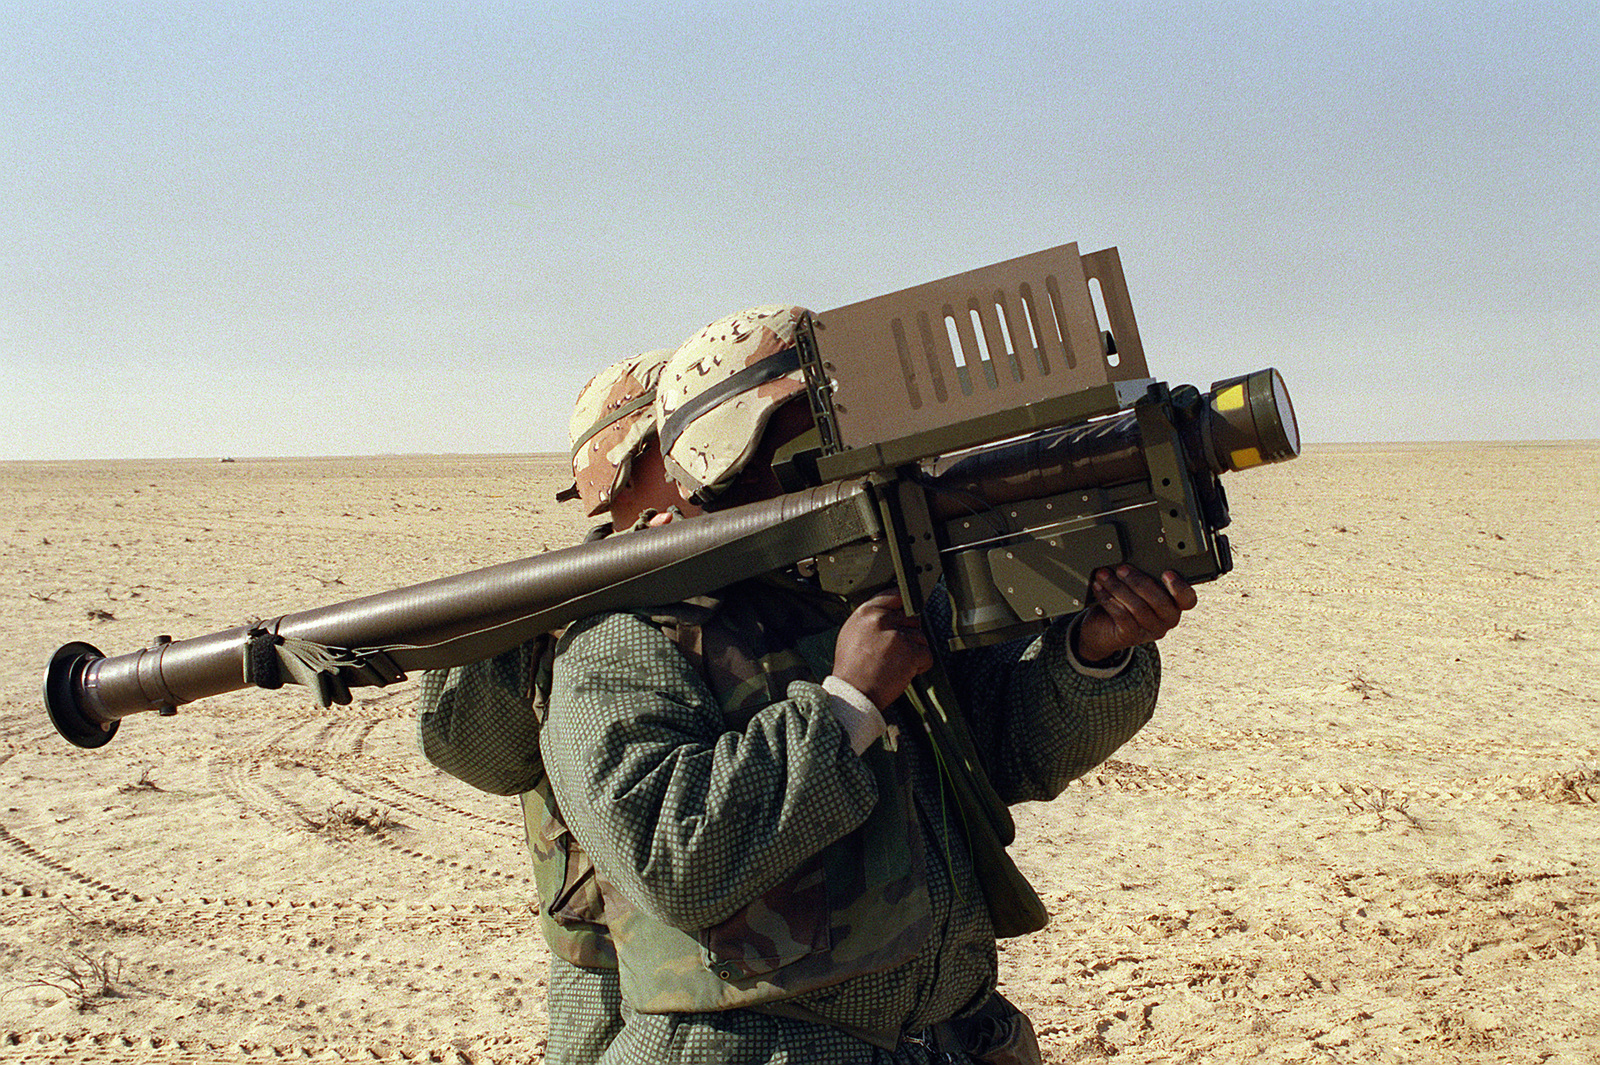 Two members of Stinger Plt., Headquarters Btry, 10th Marines, train with a FIM-92 Stinger anti-aircraft missile launcher during Operation Desert Storm. - U.S. National Archives Public Domain Image